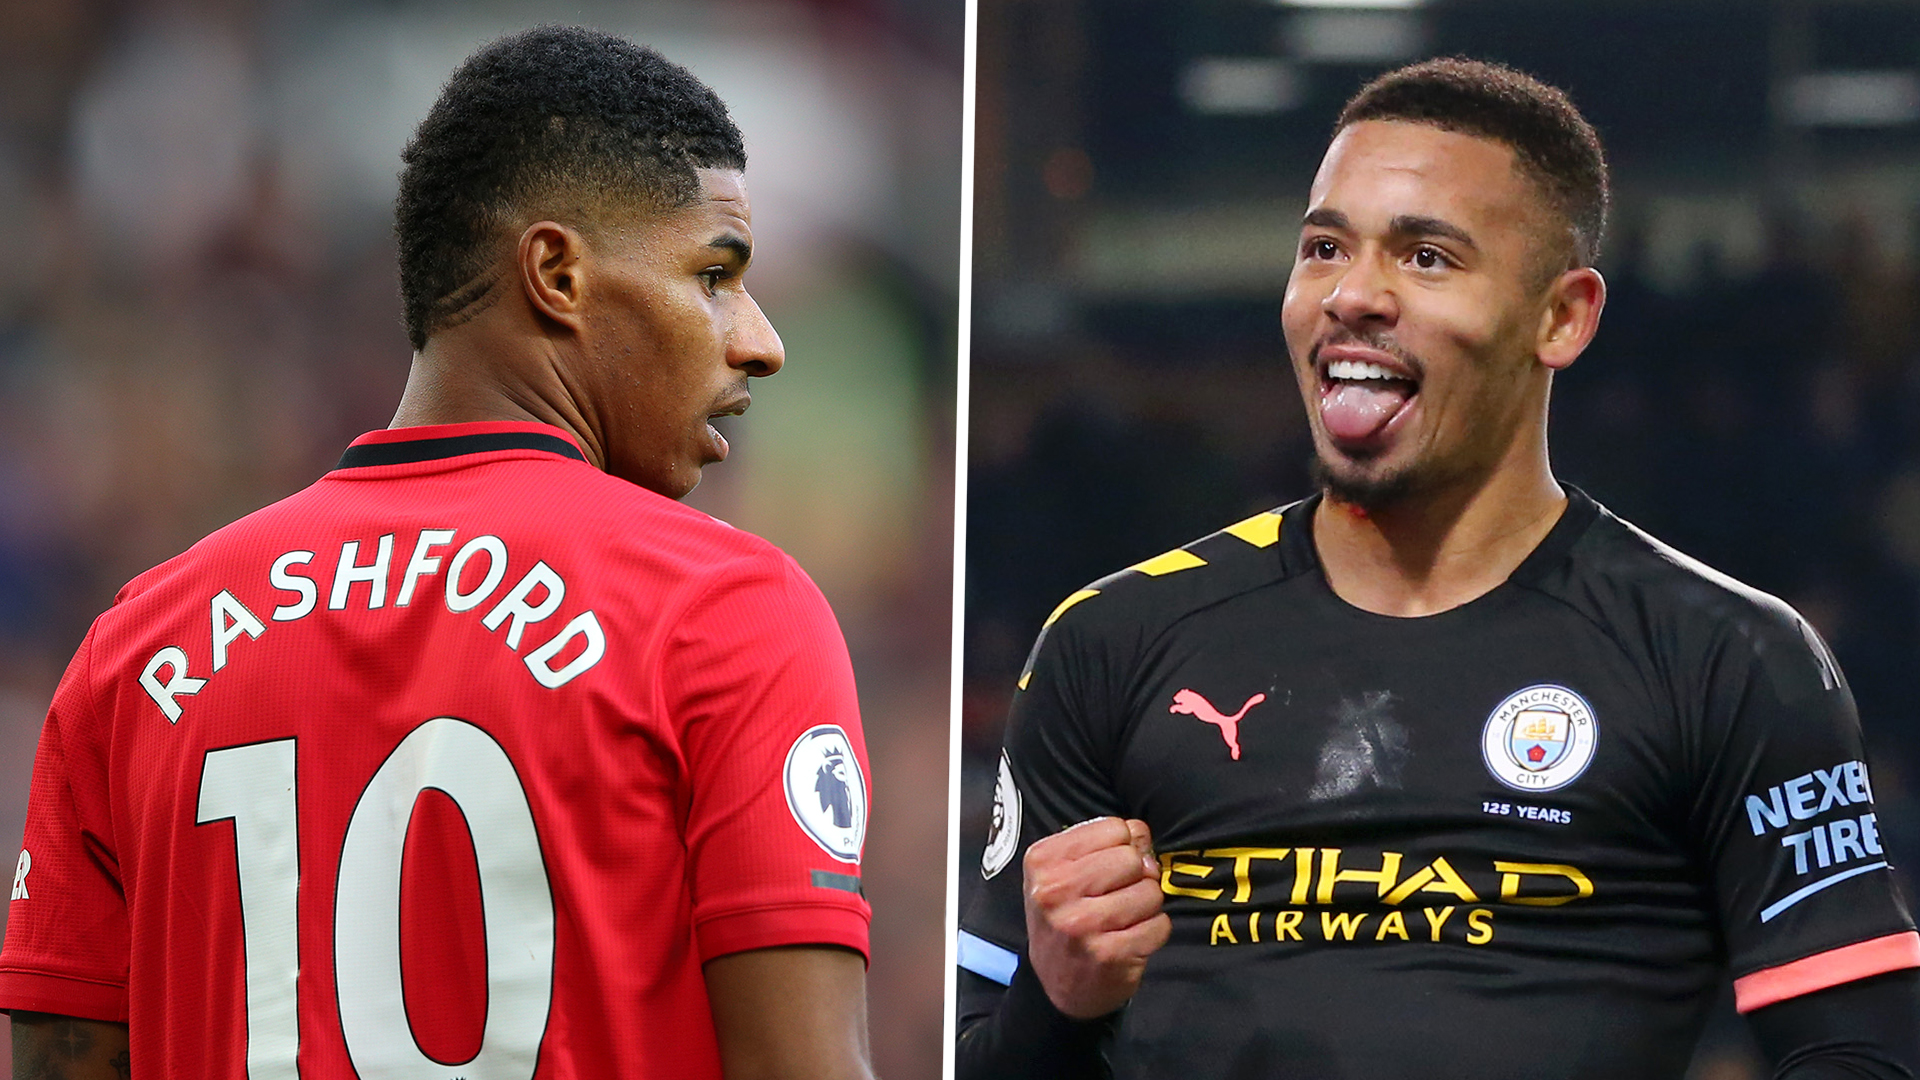 Demolition Derby Stop Rashford Man City Could Rout United With Back To Basics Approach Goal Com